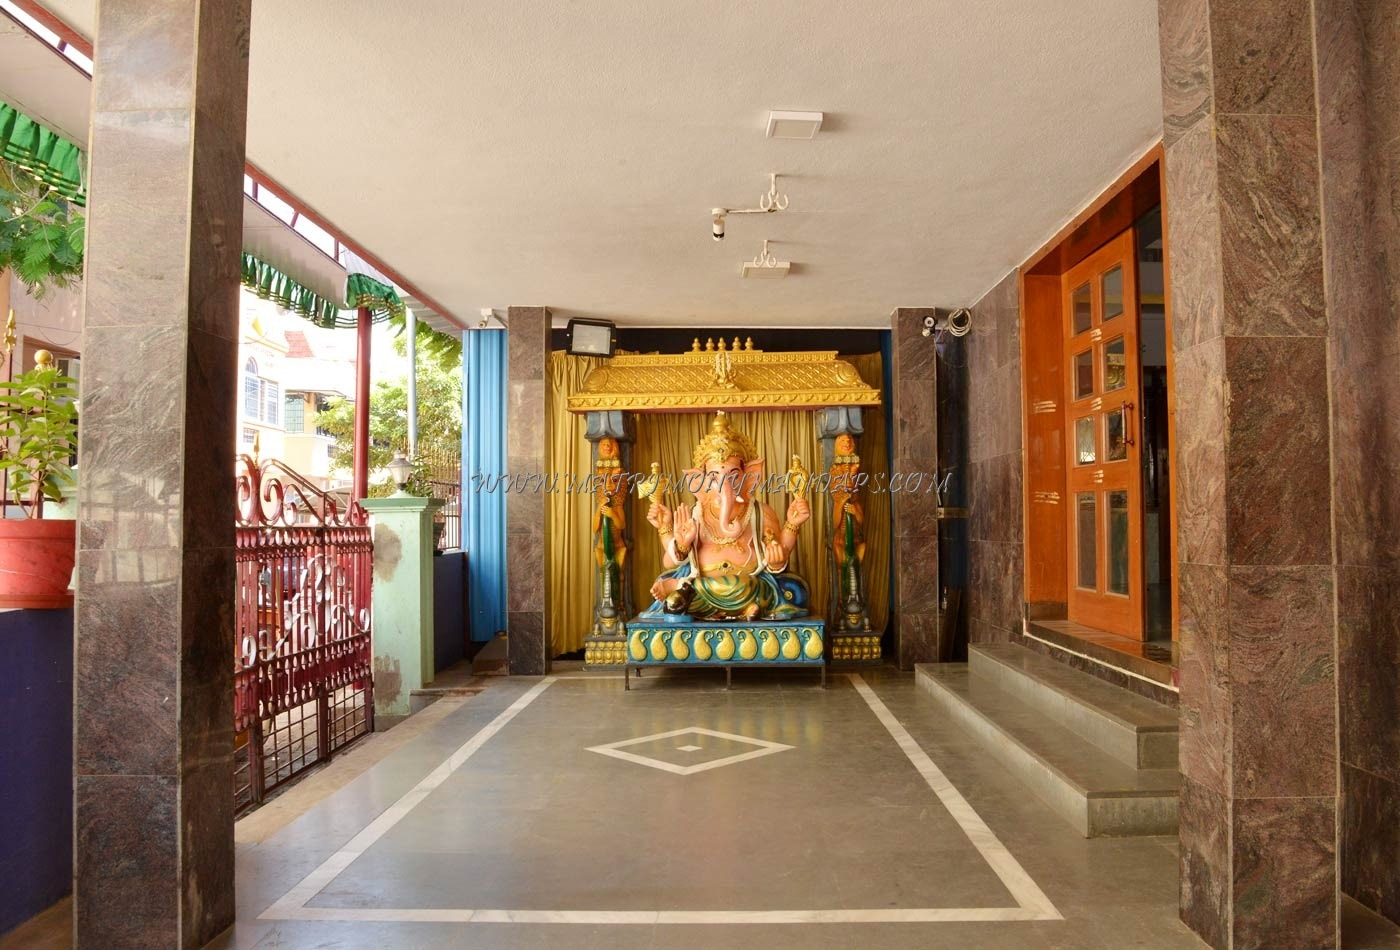 Find the availability of the KVT Mahal (A/C) in Koyambedu, Chennai and avail special offers